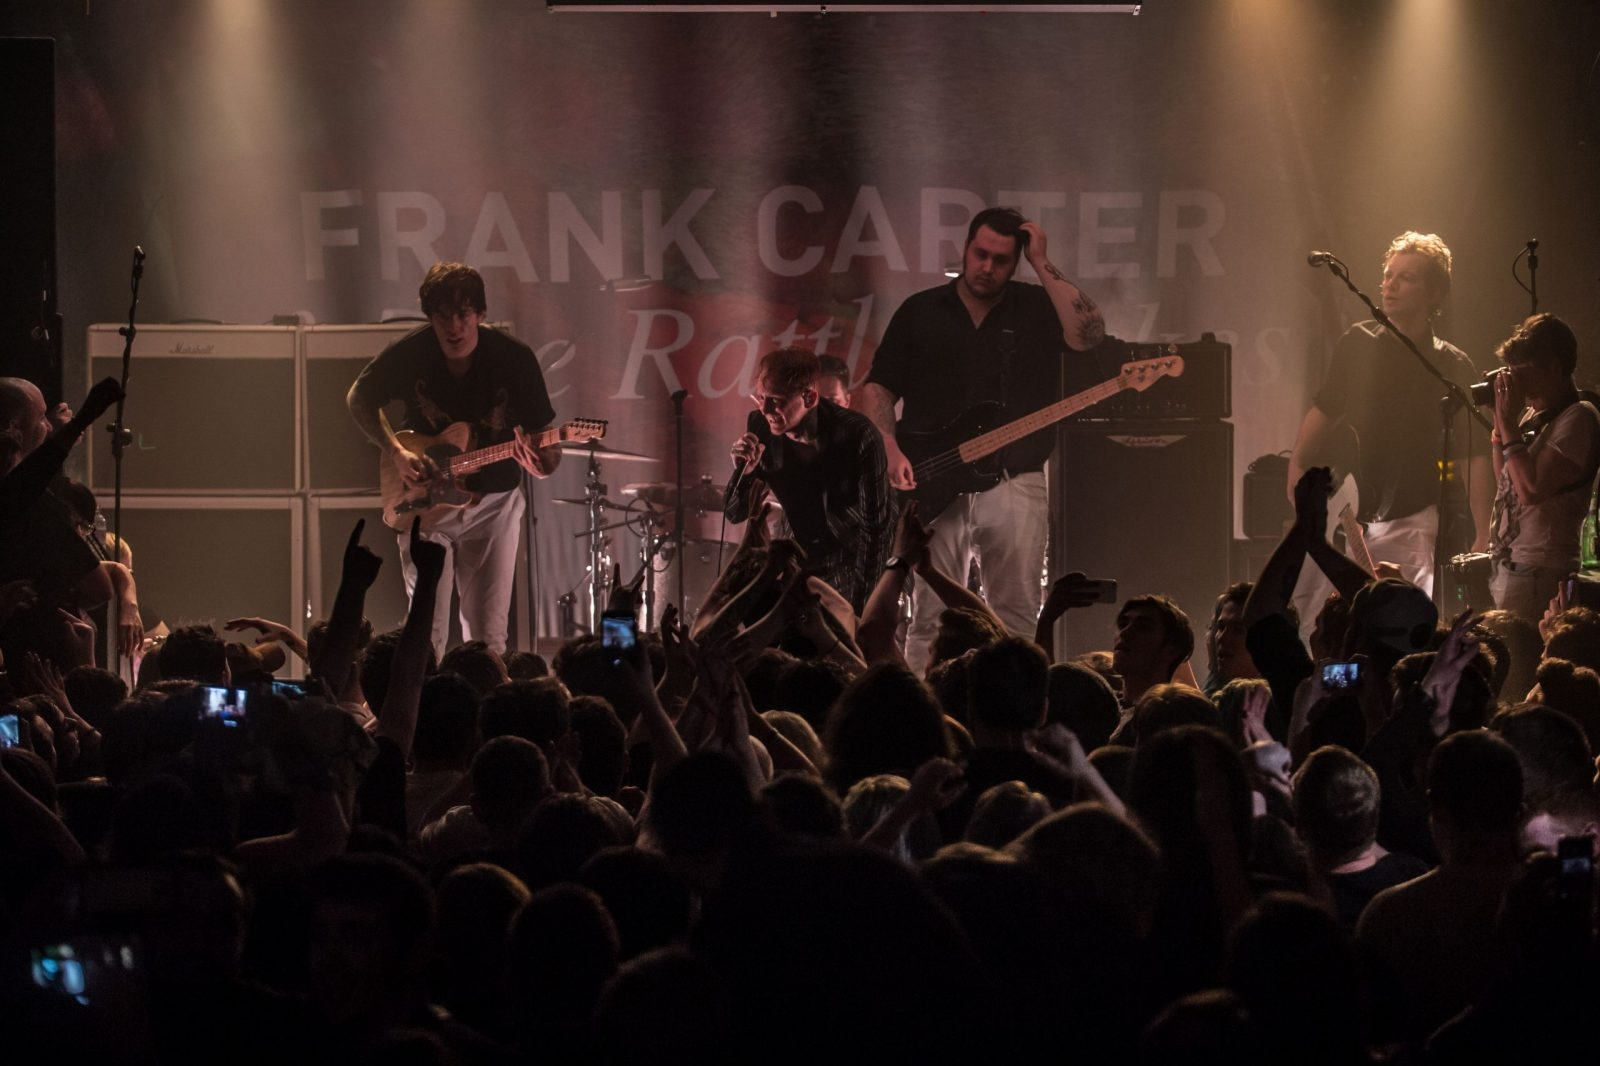 Frank Carter & The Rattlesnakes @ Oh Yeah Music Centre 12